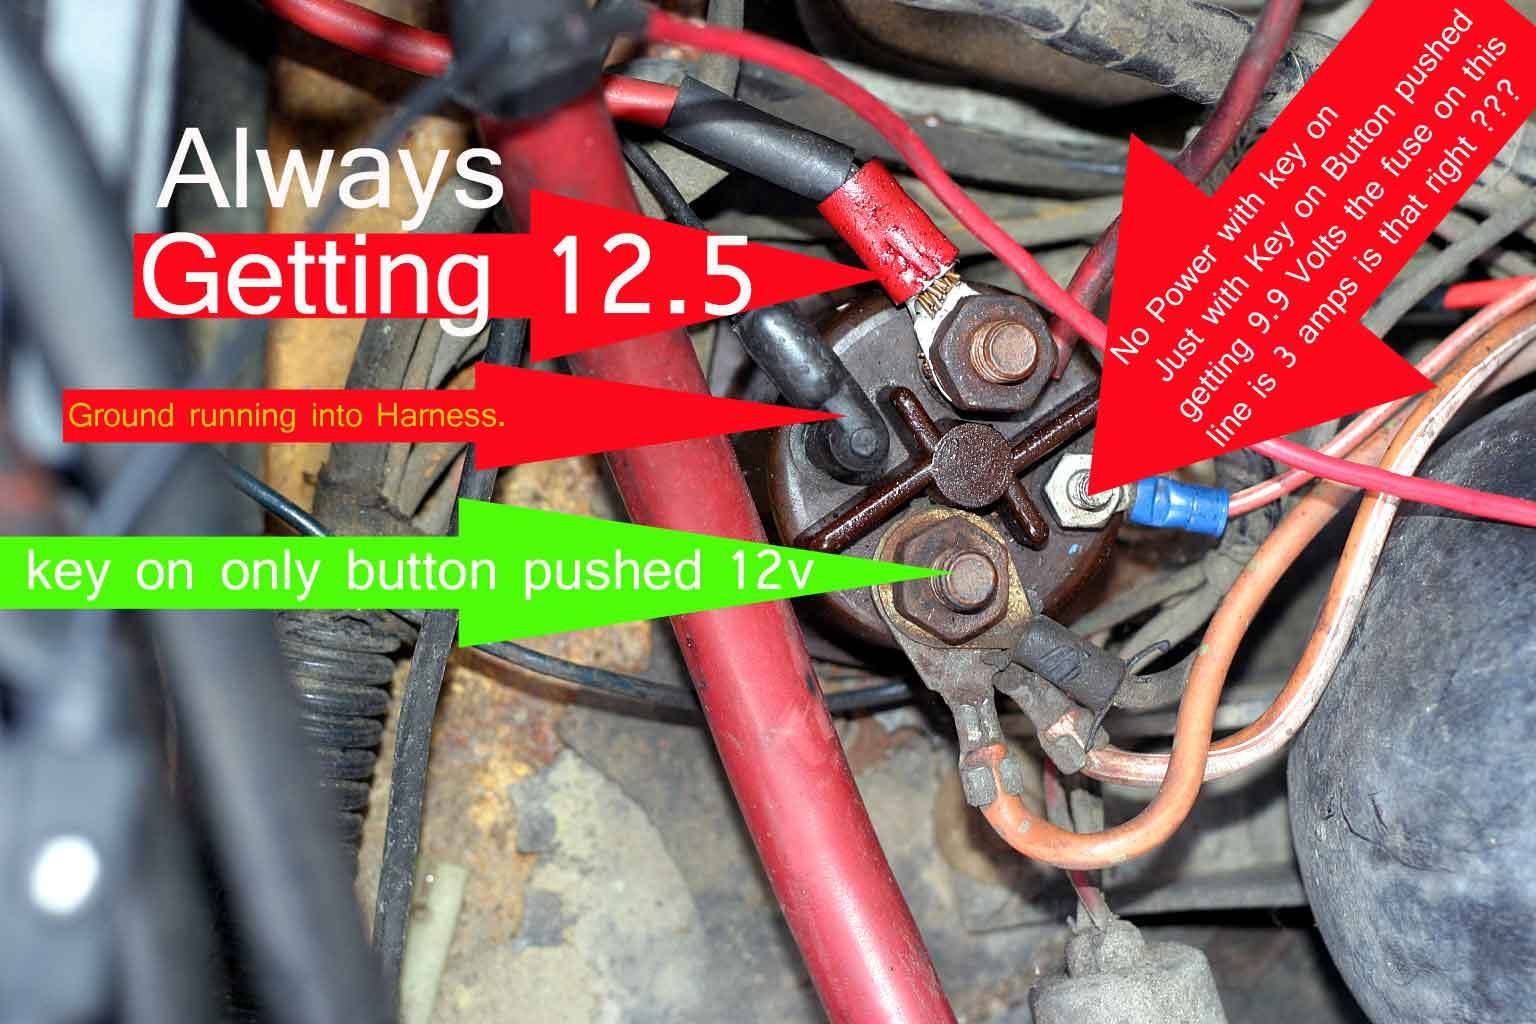 glow plug wiring diagram 7 3 5 mm audio jack 2 relay location free engine image for